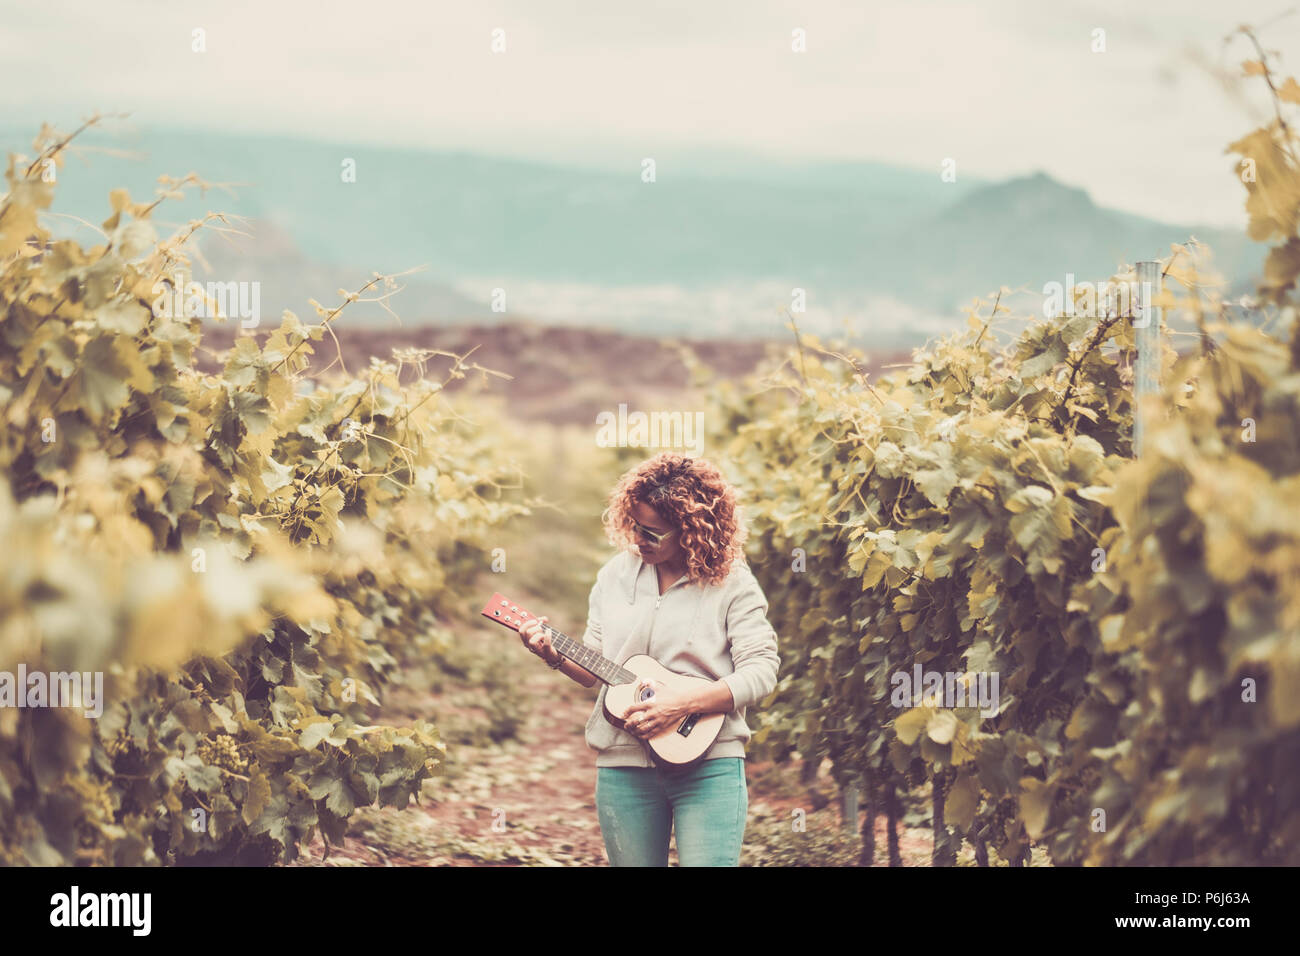 nice beautiful caucasian woman walk alone in the vineyard green background singing an ukulele acoustic guitar. freedom alternative lifestyle hippy con - Stock Image